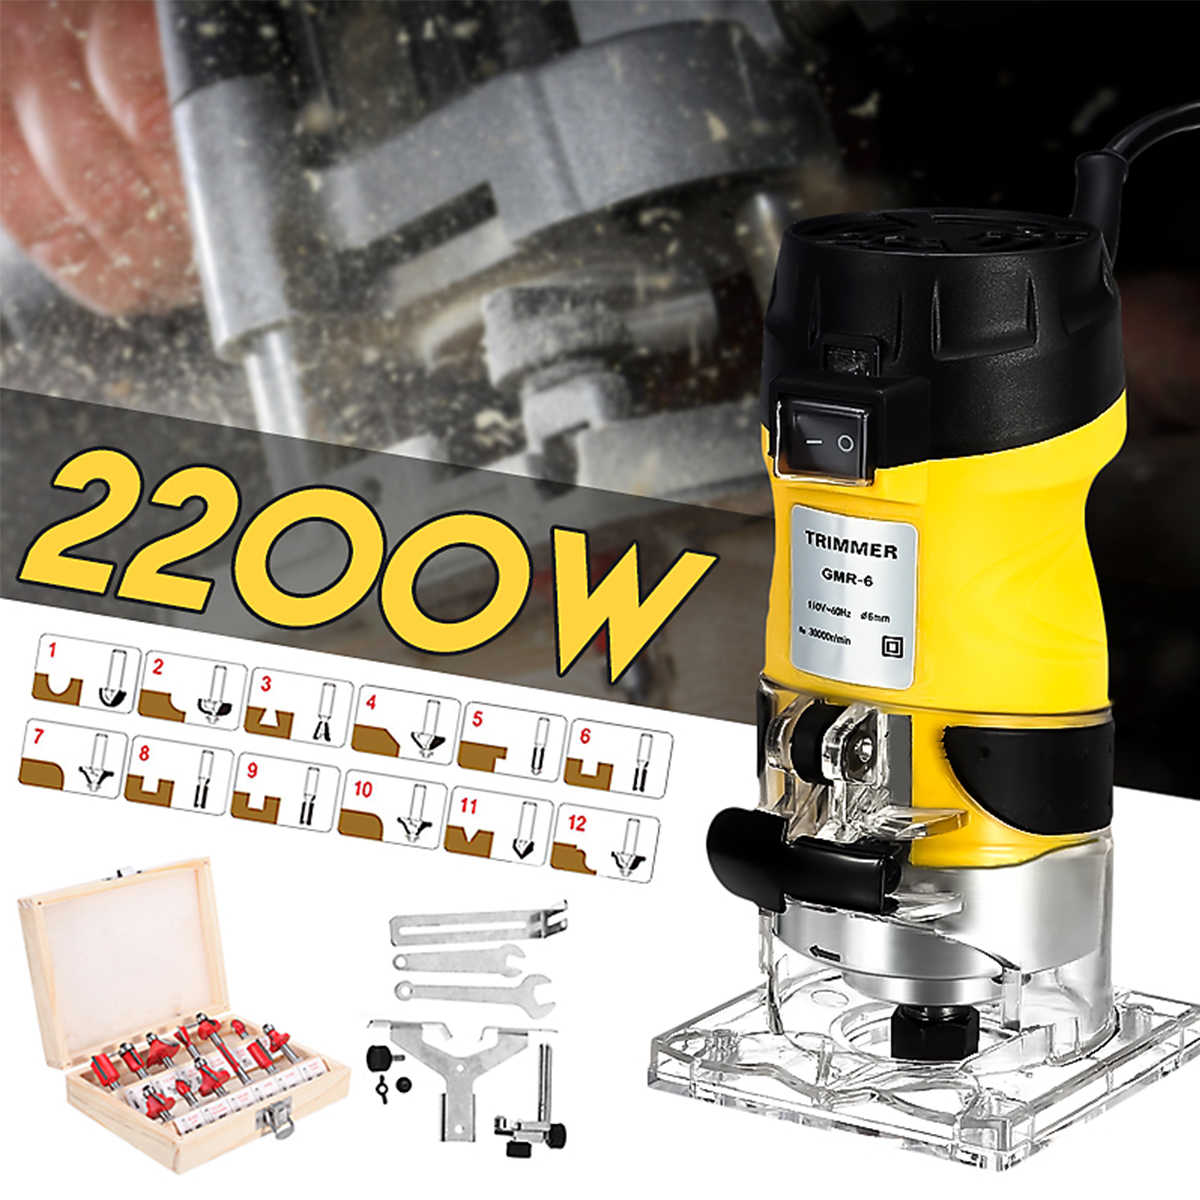 2200W Elektrische Hand Trimmer Hout Router 6.35mm Houtbewerking Laminator Timmerwerk Trimmen Snijden Carving Machine Power Tool